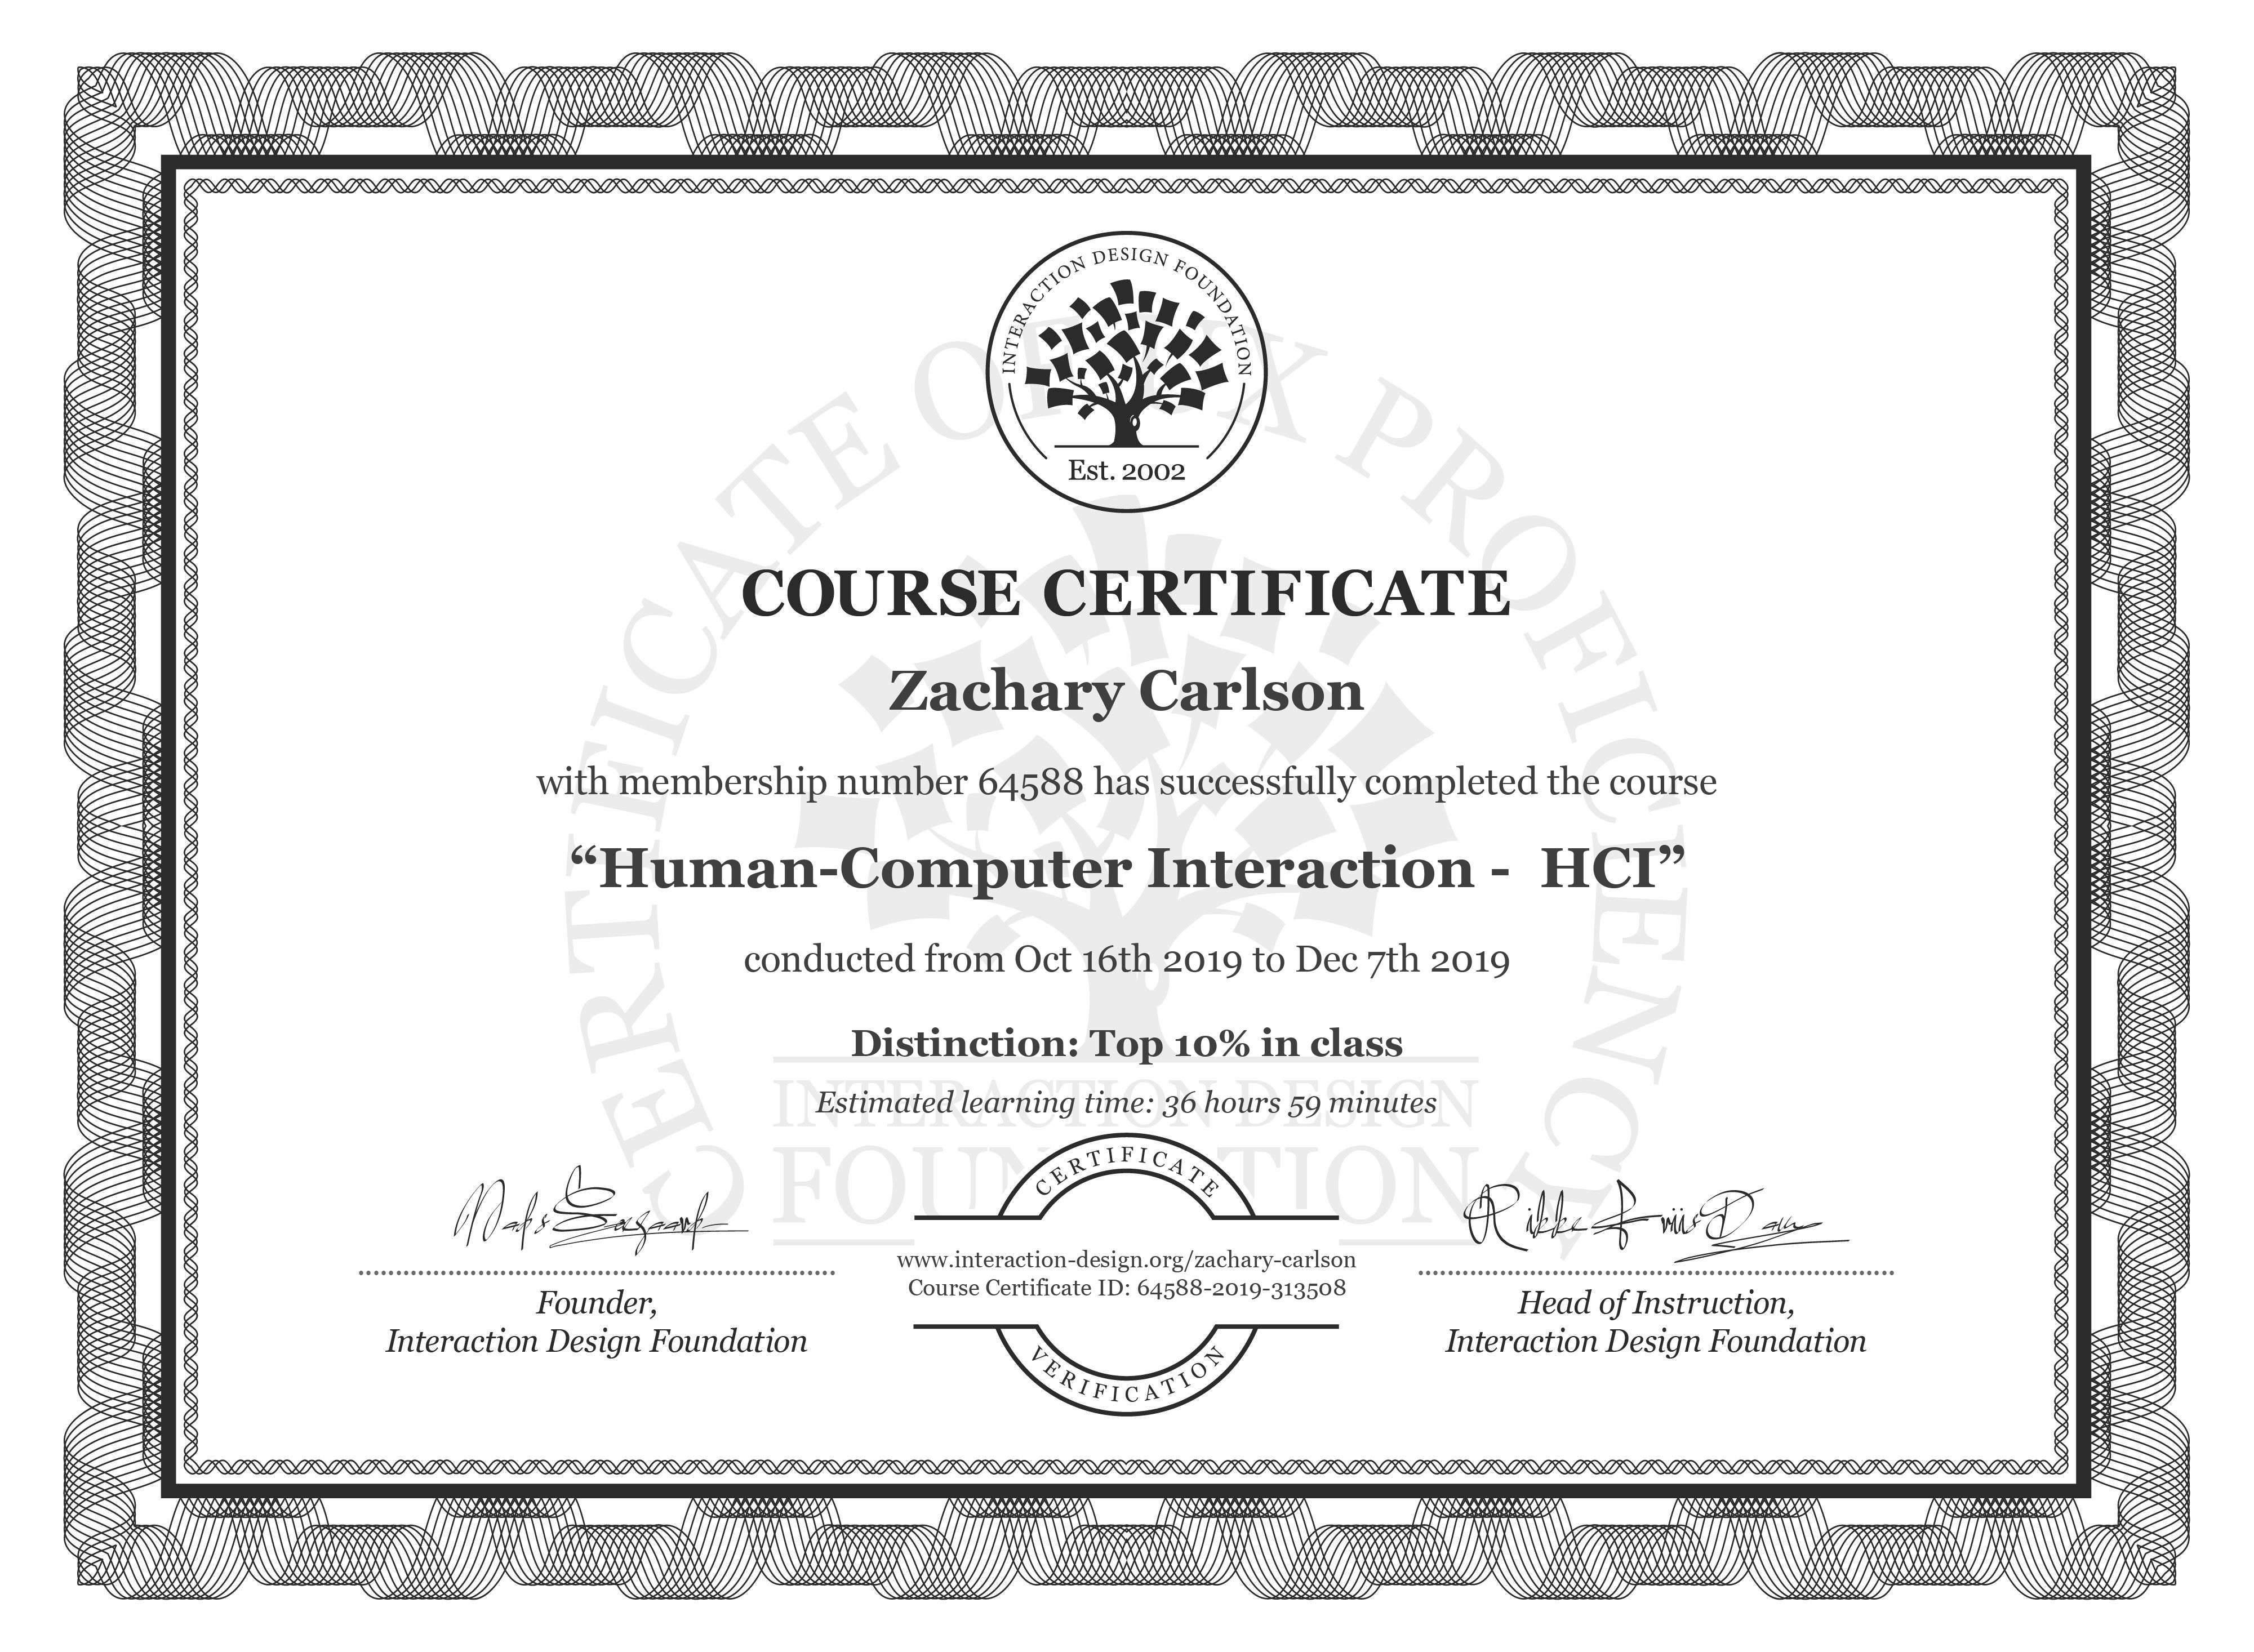 Zachary Carlson's Course Certificate: Human-Computer Interaction -  HCI